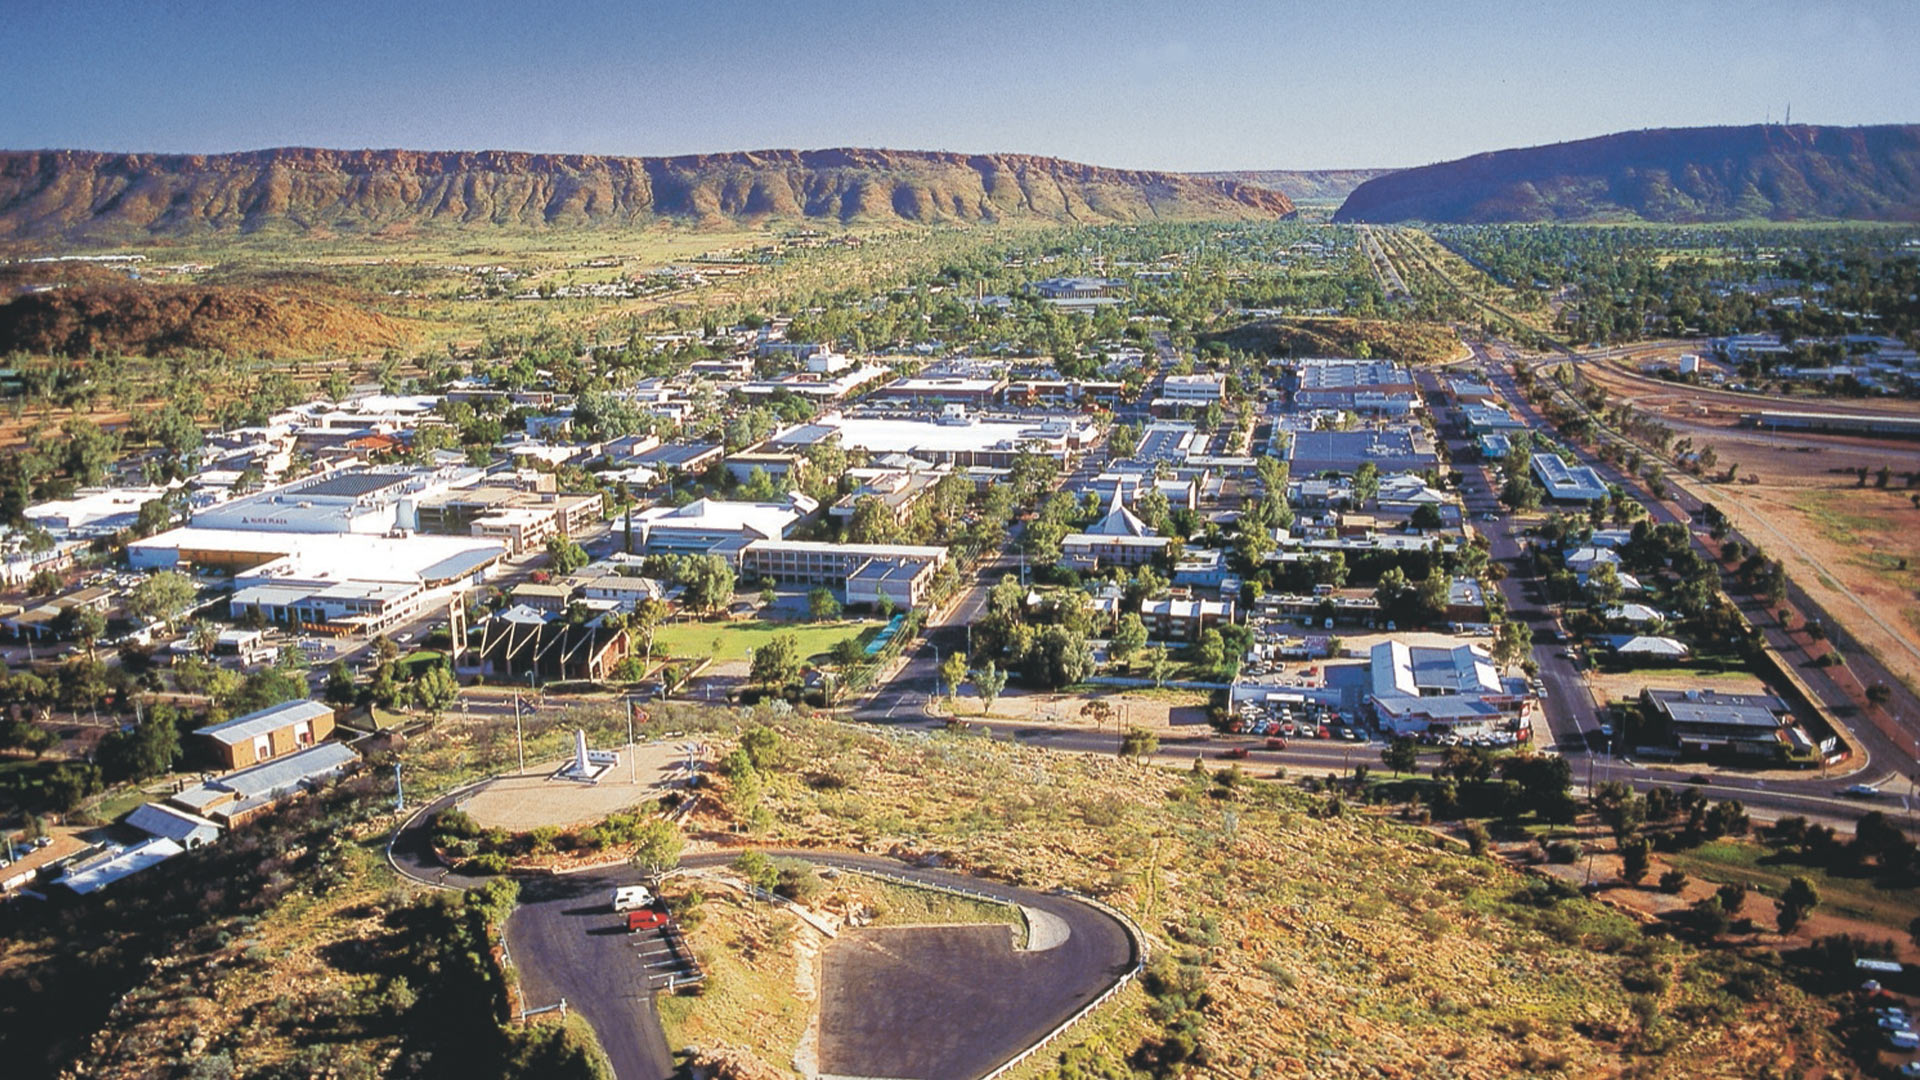 tours transfer alice springs rail terminal to hotel or vv6481acea98df6ef28340ff00001e30c2 1